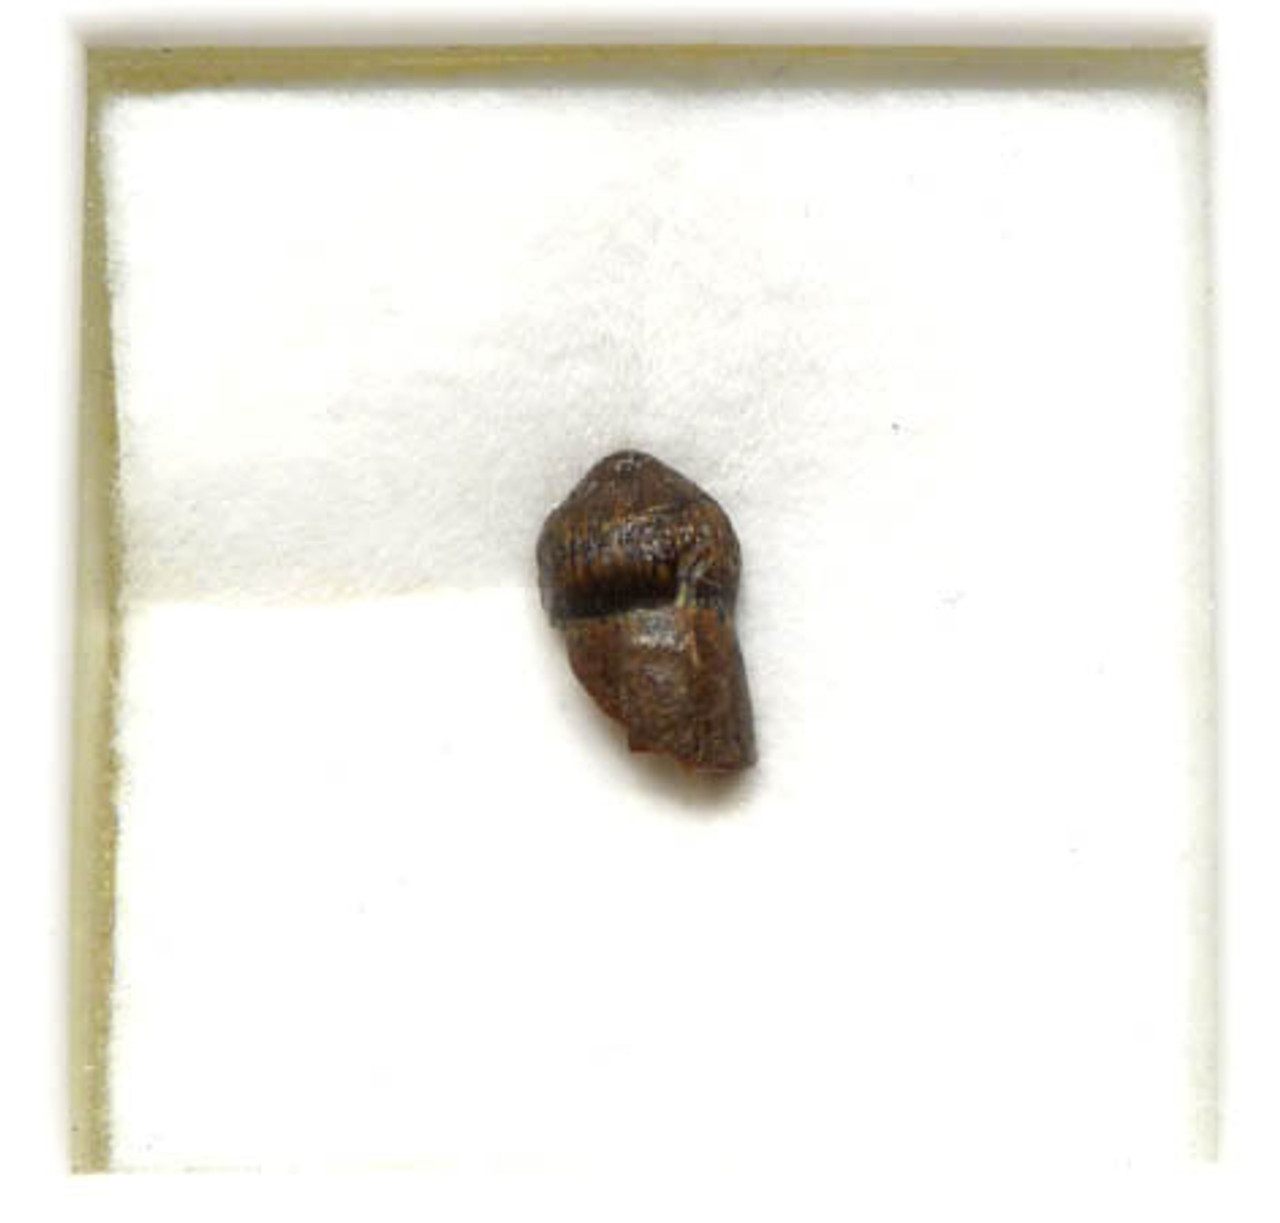 MV10-124 - CRETACEOUS BRACHYCHAMPSA ALLIGATORINE TOOTH FROM HELL CREEK